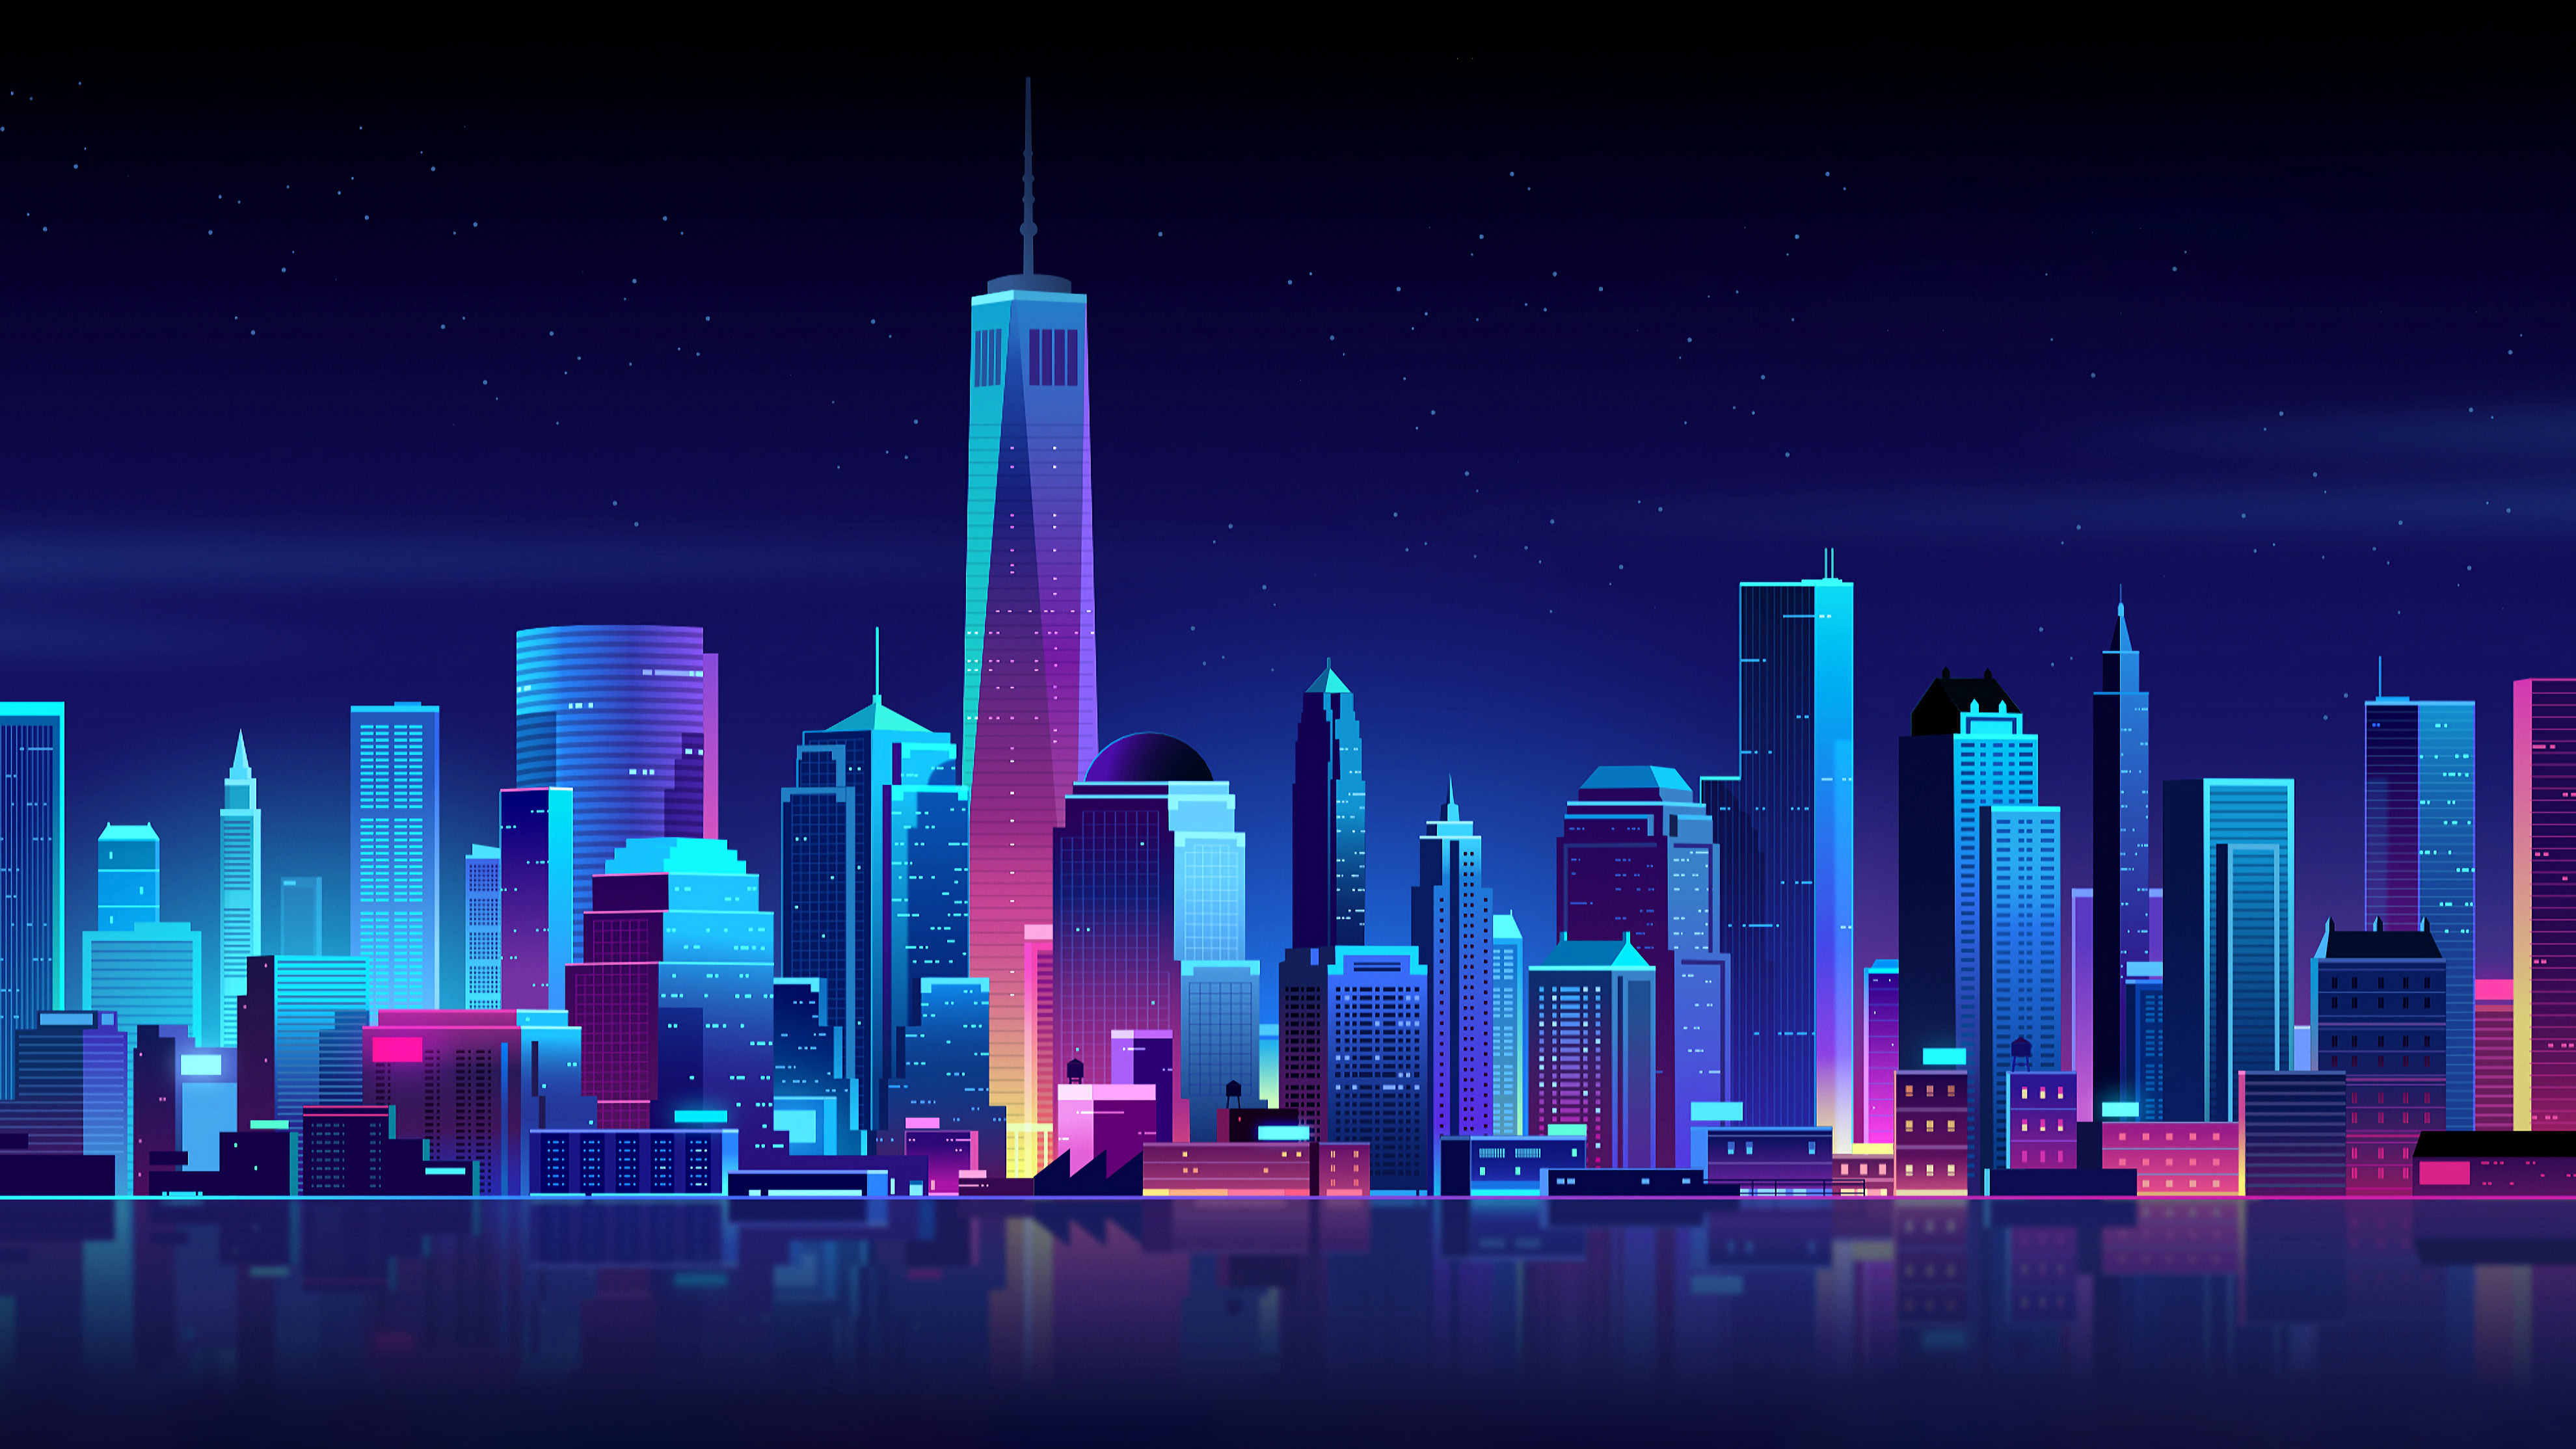 New York Buildings City Night Minimalism Hd Artist 4k Wallpapers Images Backgrounds Photos And Pictures